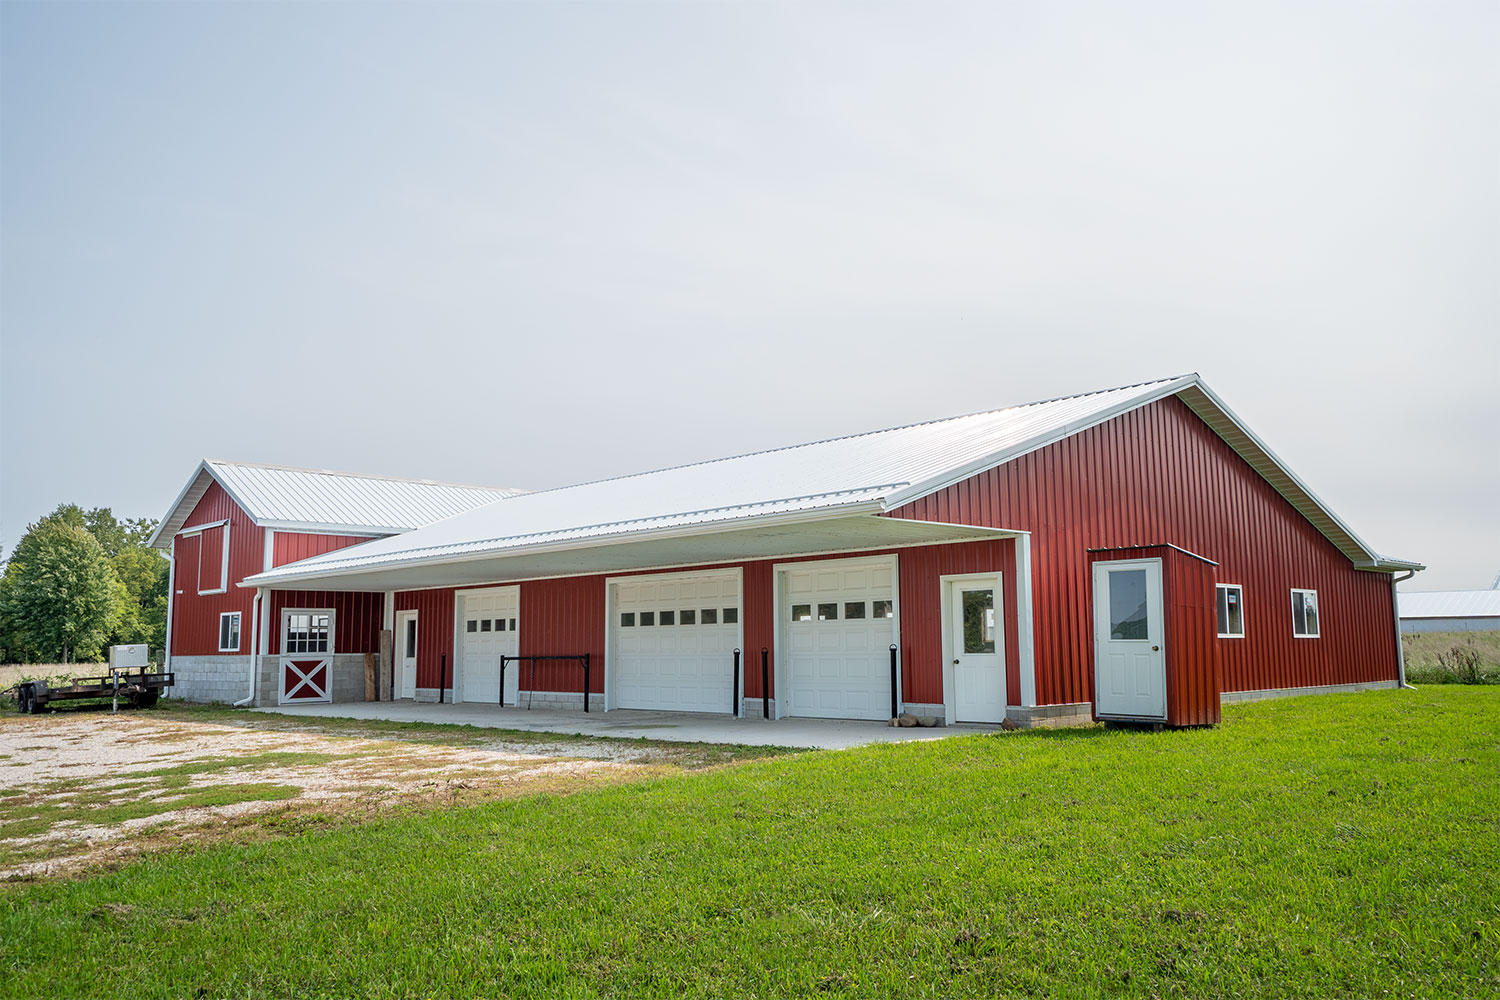 Real Estate Photography: Barn Exterior